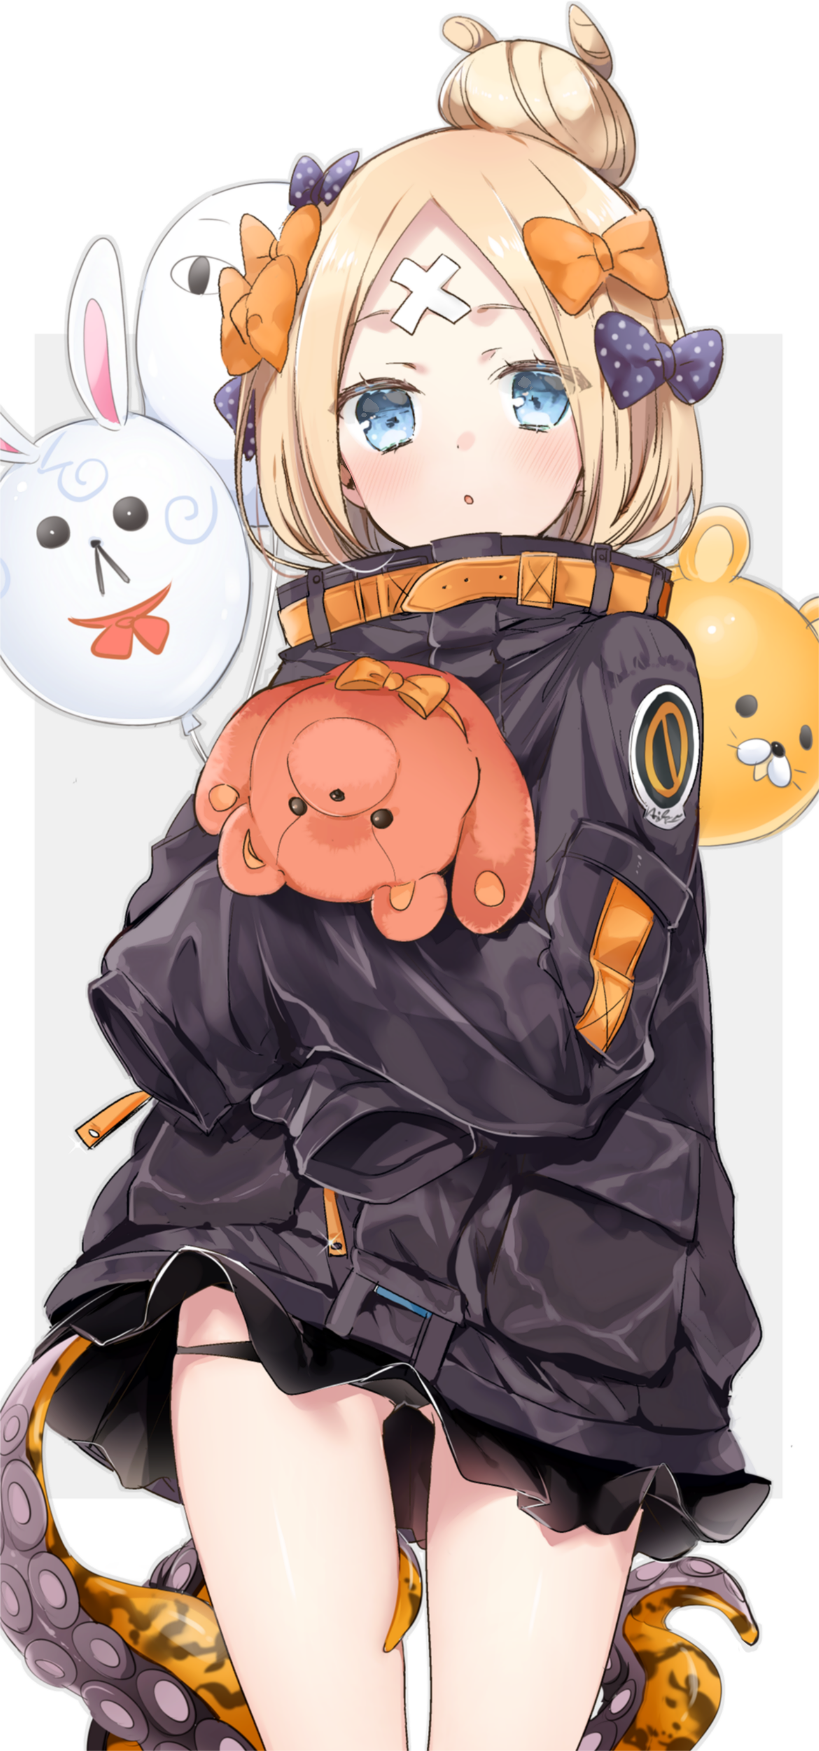 1girl abigail_williams_(fate/grand_order) alternate_hairstyle balloon bandaid_on_forehead bangs belt black_bow black_jacket black_panties blonde_hair blue_eyes bow crossed_bandaids fate/grand_order fate_(series) forehead fou_(fate/grand_order) hair_bow hair_bun heroic_spirit_traveling_outfit highres holding holding_stuffed_animal jacket long_hair medjed open_mouth orange_bow panties parted_bangs polka_dot polka_dot_bow sino_(sionori) sleeves_past_fingers sleeves_past_wrists stuffed_animal stuffed_toy teddy_bear tentacle thighs underwear white_background